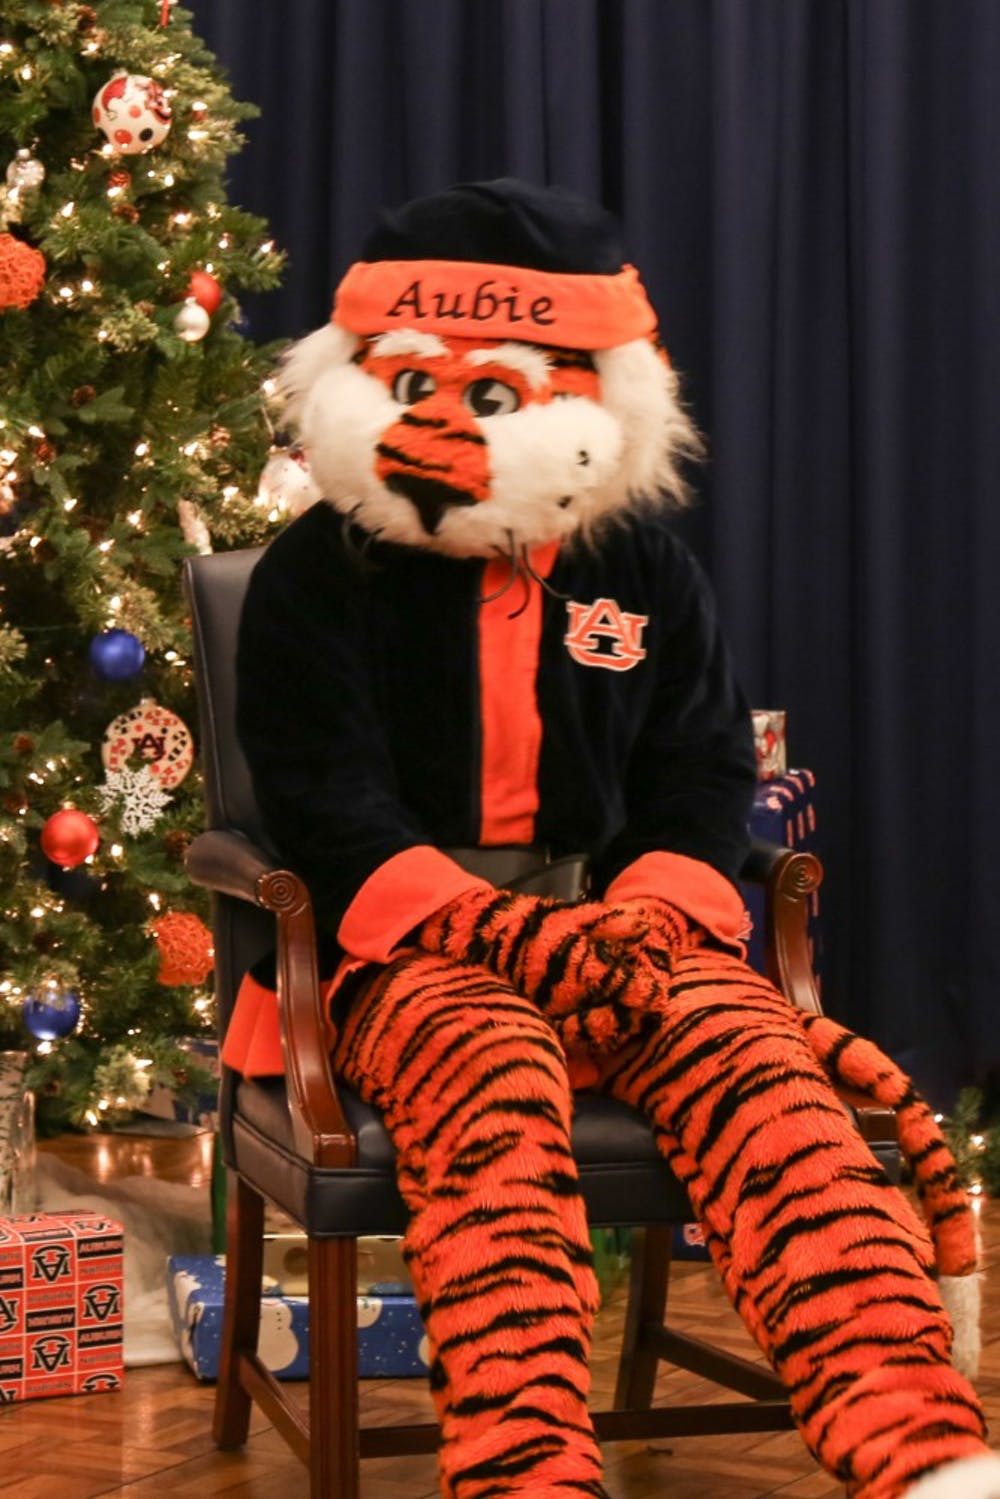 Aubie Claus is coming to town